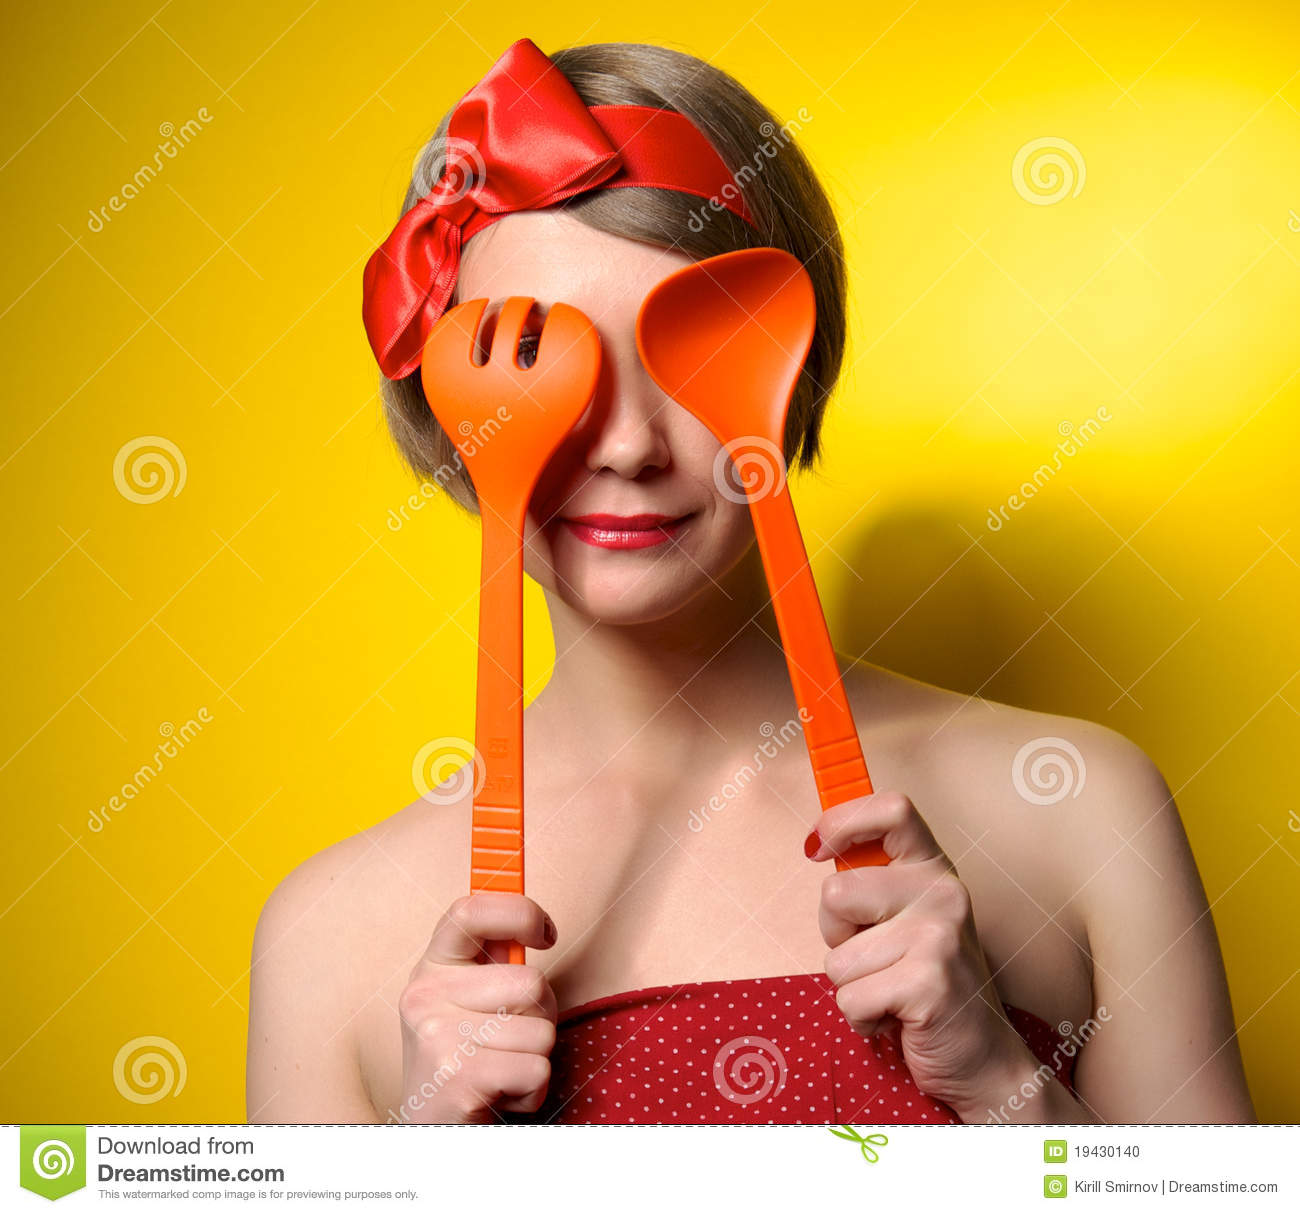 Pinup style housewife with kitchen utensils